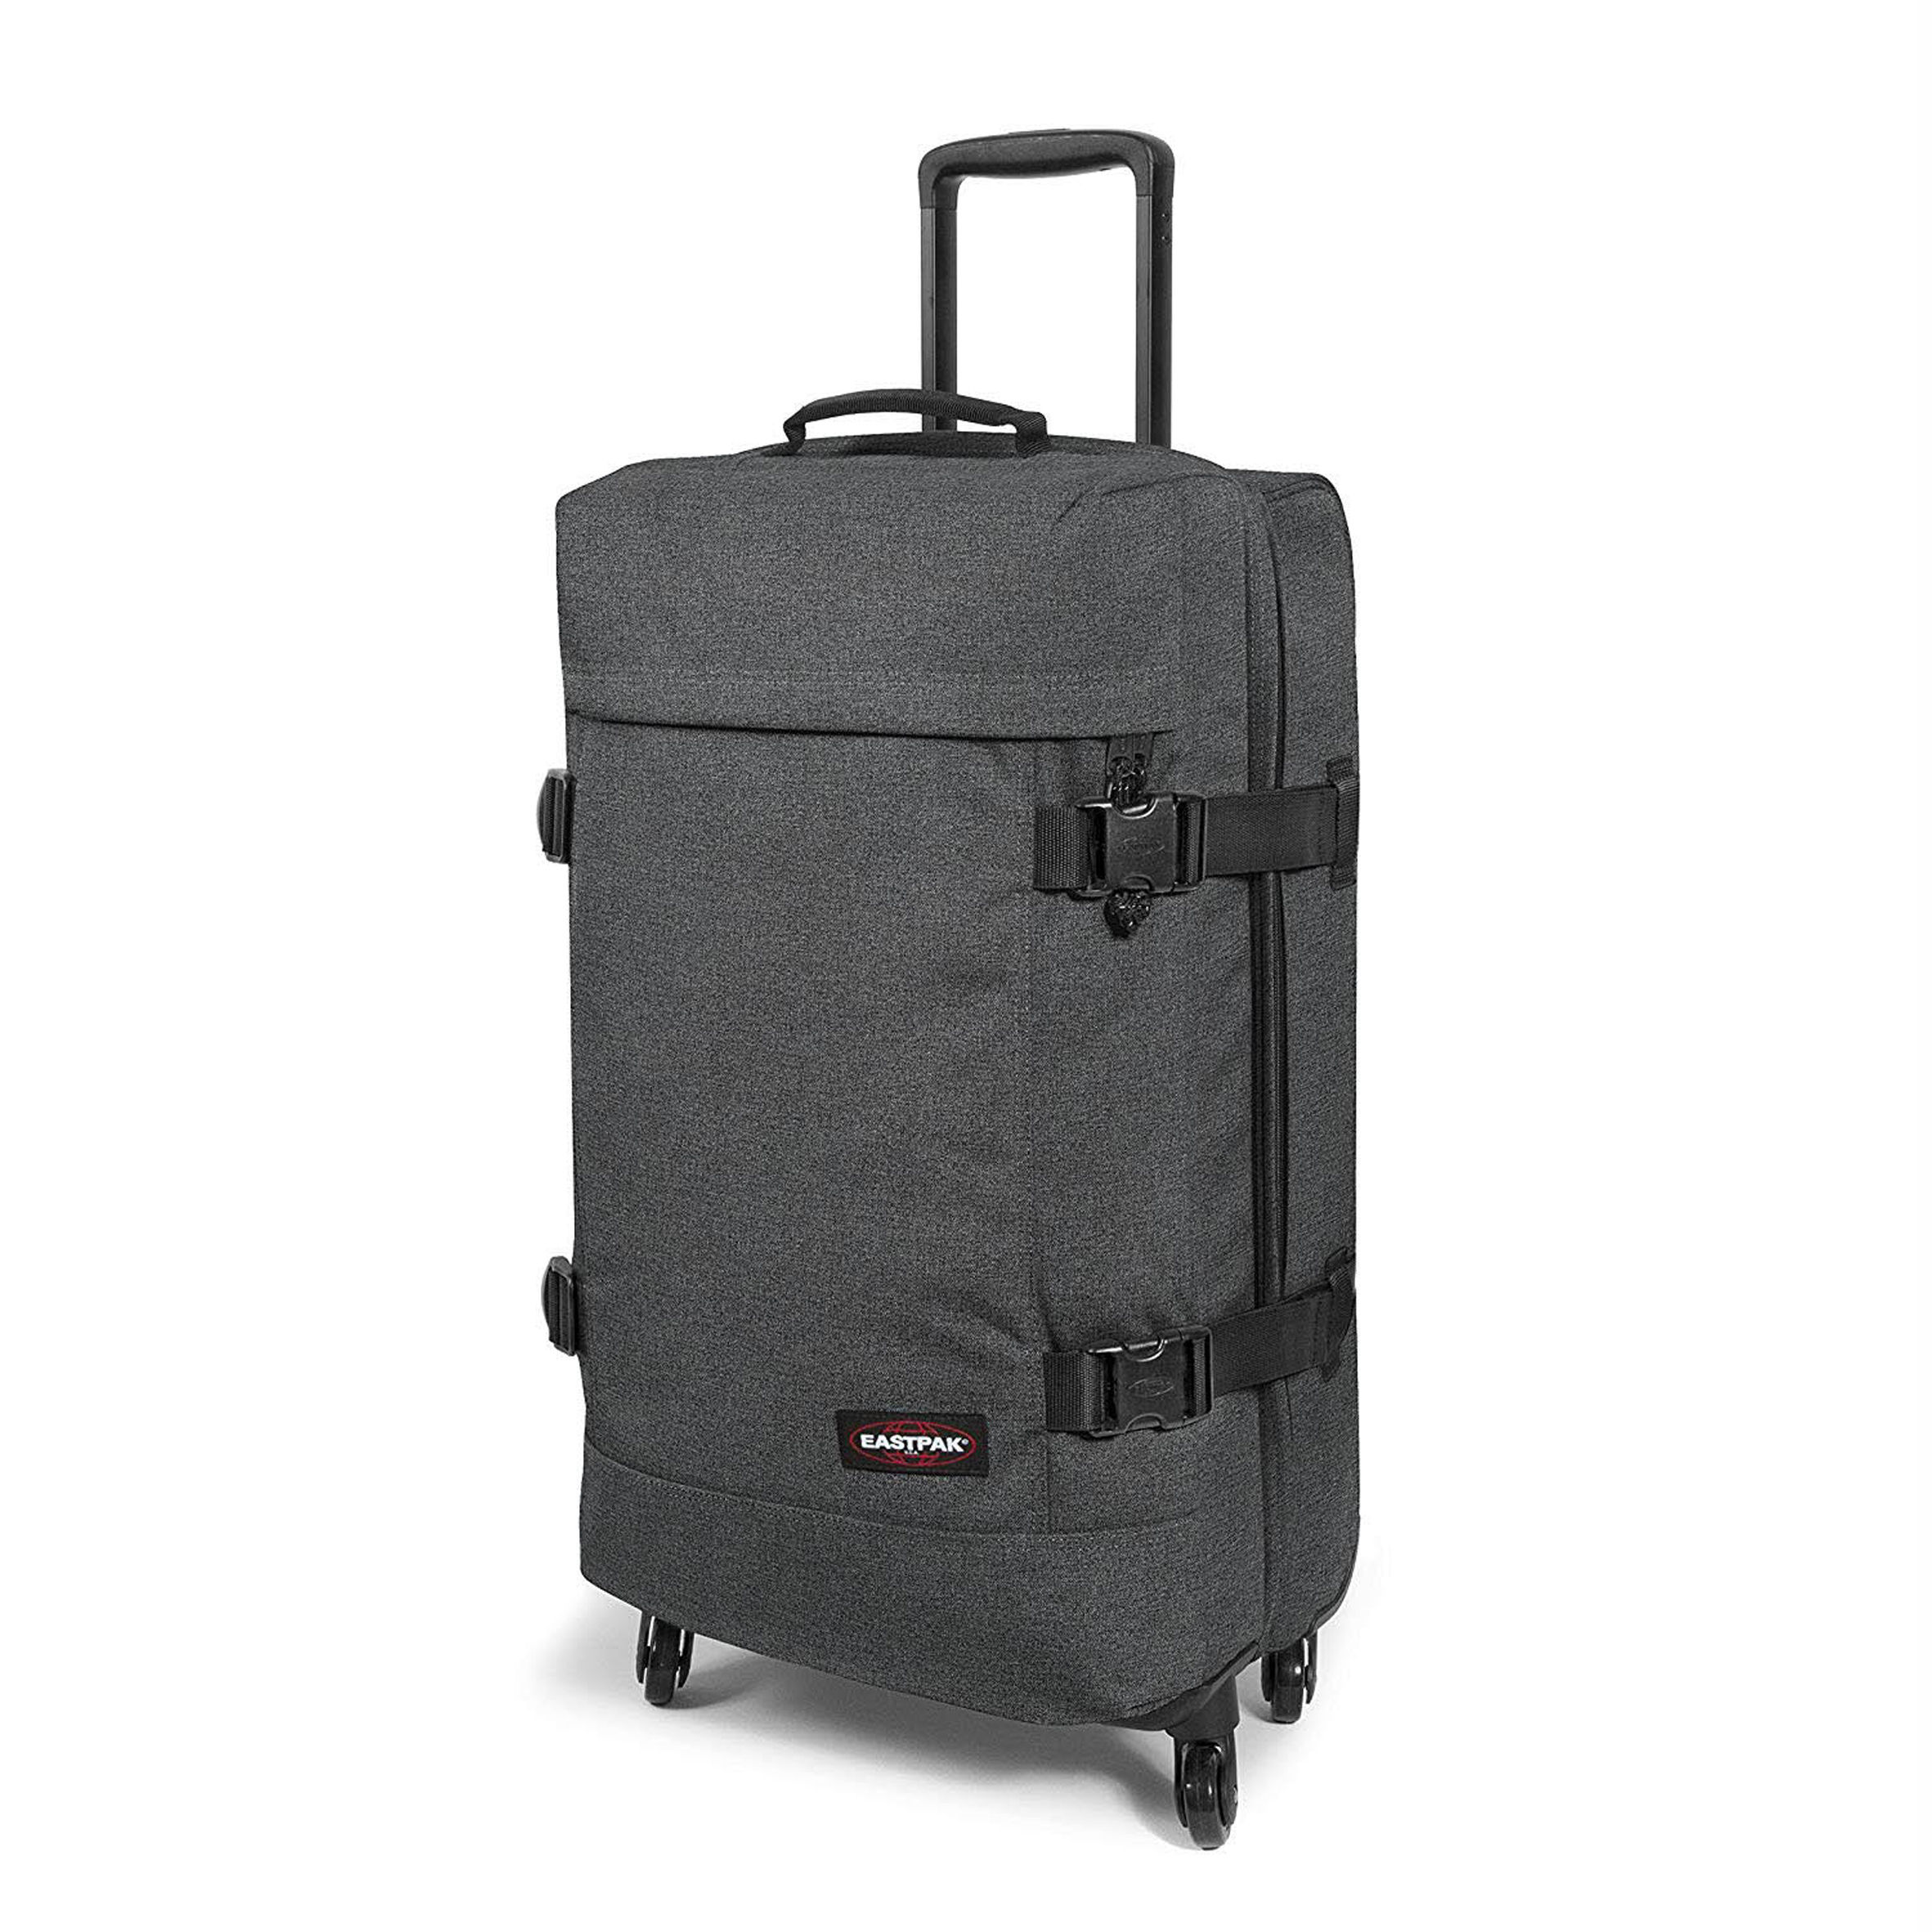 Eastpak Trans4 L suitcase in black denim, Amazon, amazon.co.uk